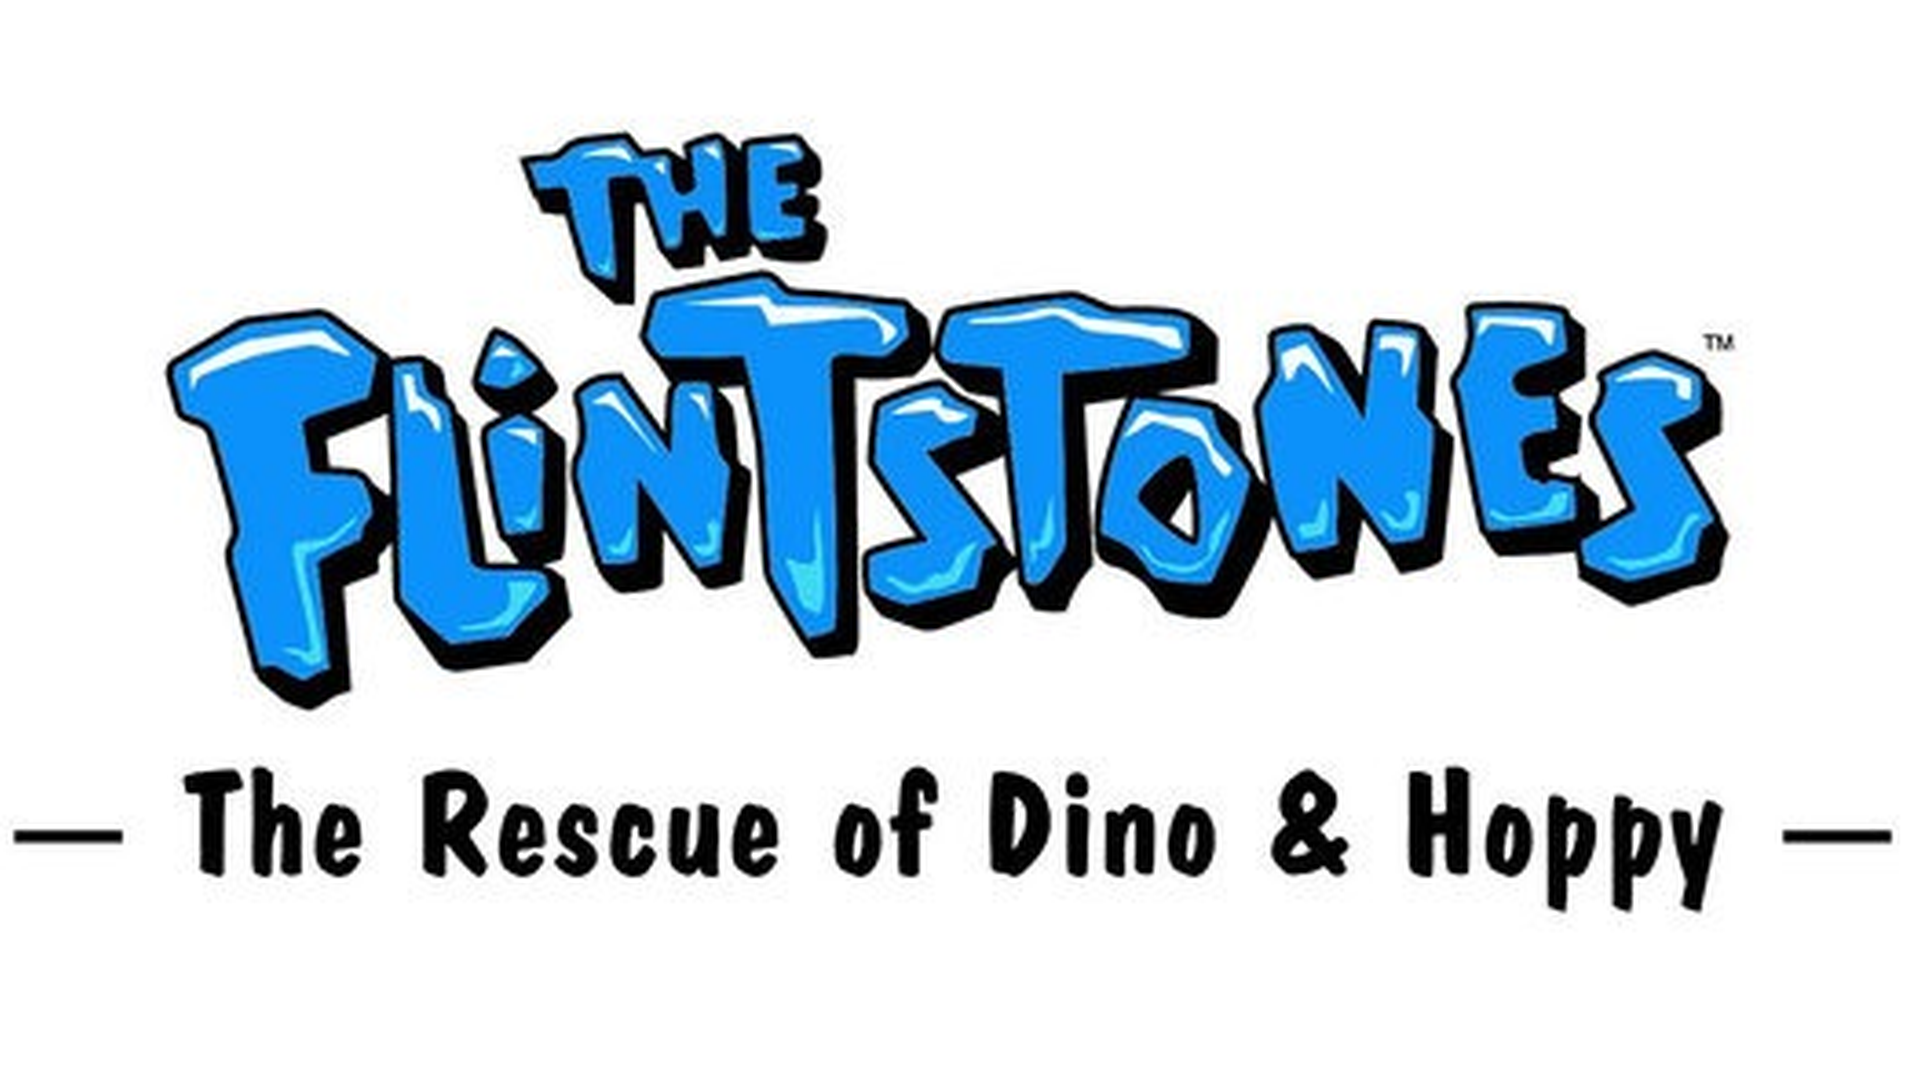 The Flintstones: The Rescue of Dino and Hoppy Logo